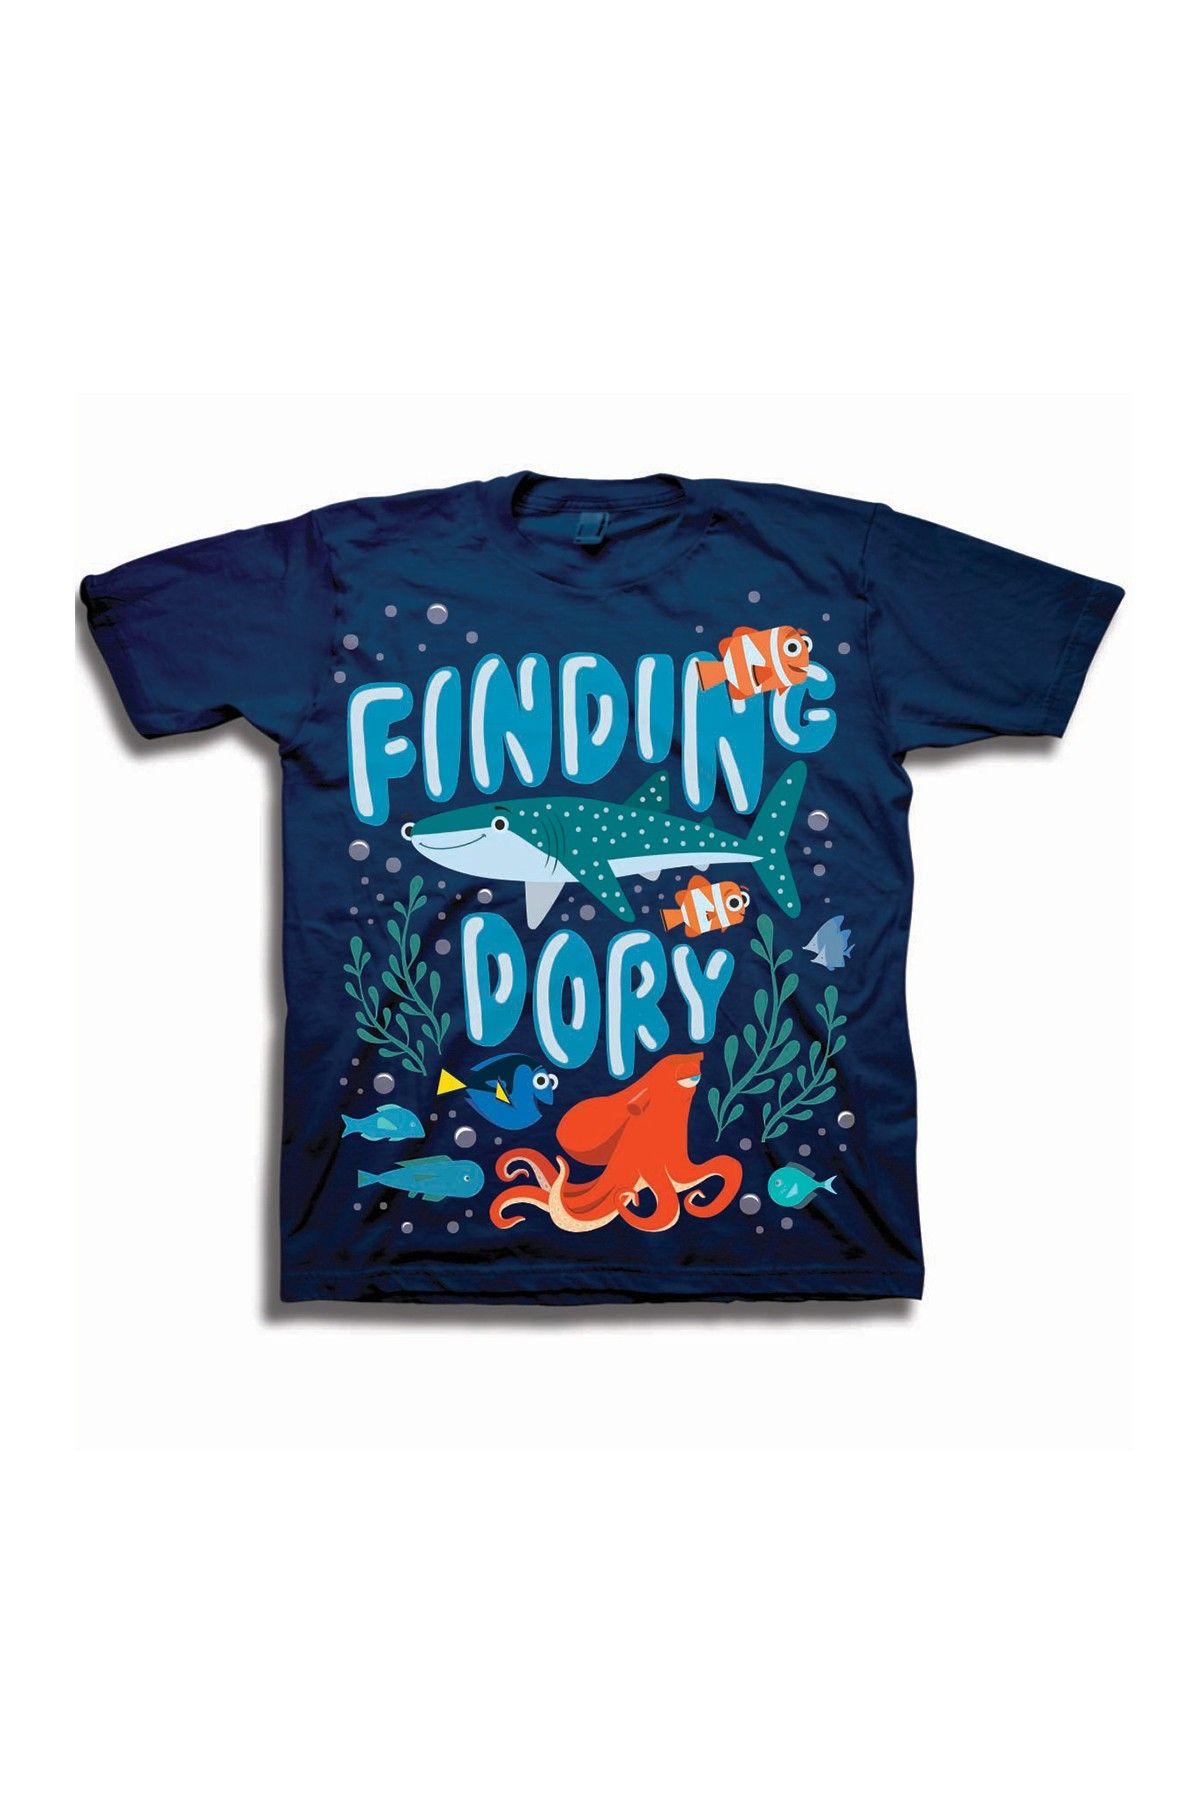 Finding Dory Tee (Toddler Boys)